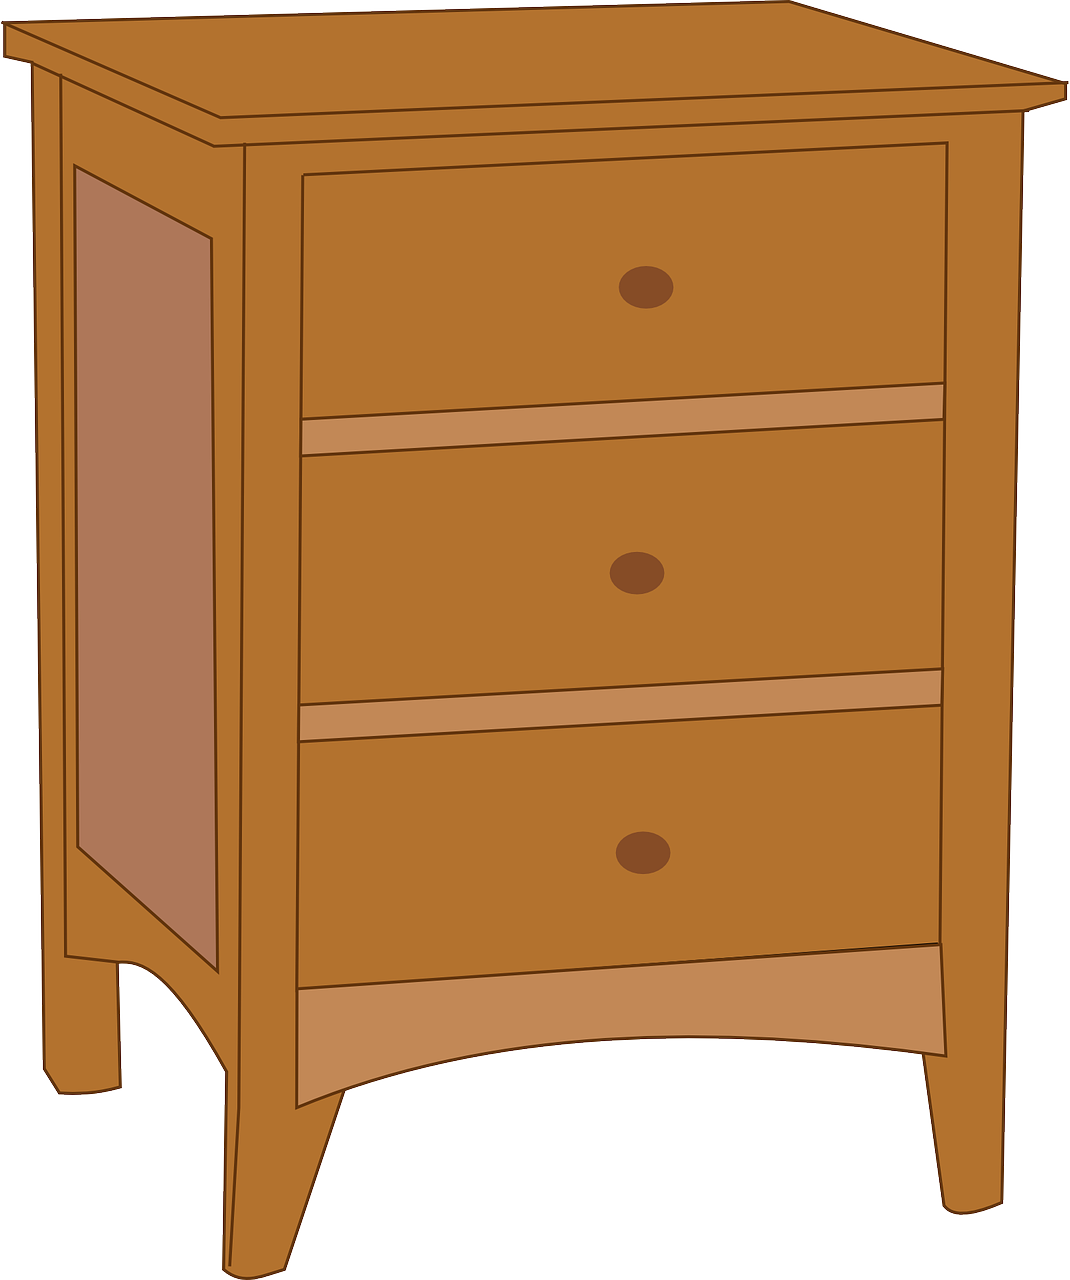 Furniture clipart cupboard. Bedside tables coffee clip